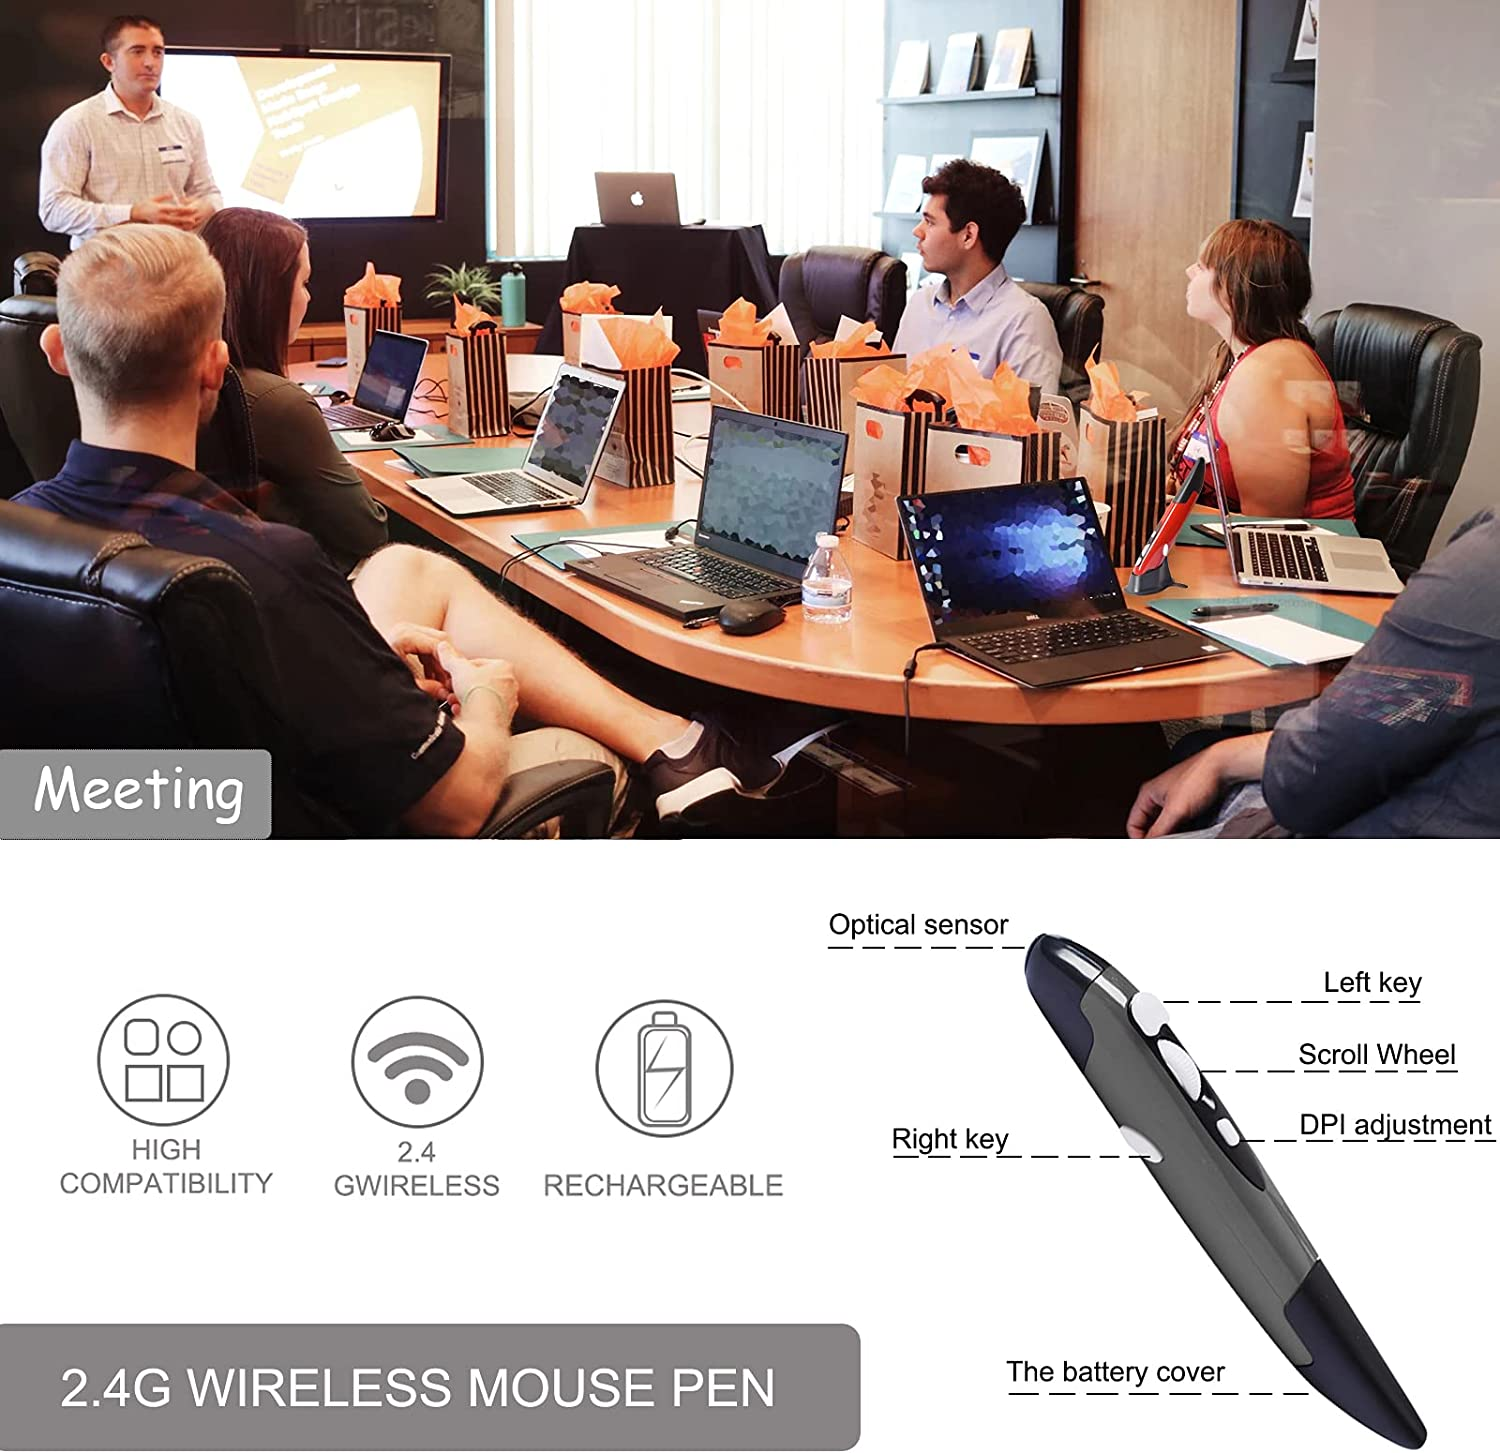 2.4GHz USB Wireless Optical Pen Mouse Smart Mouse for PC Laptop Computer (Grey)